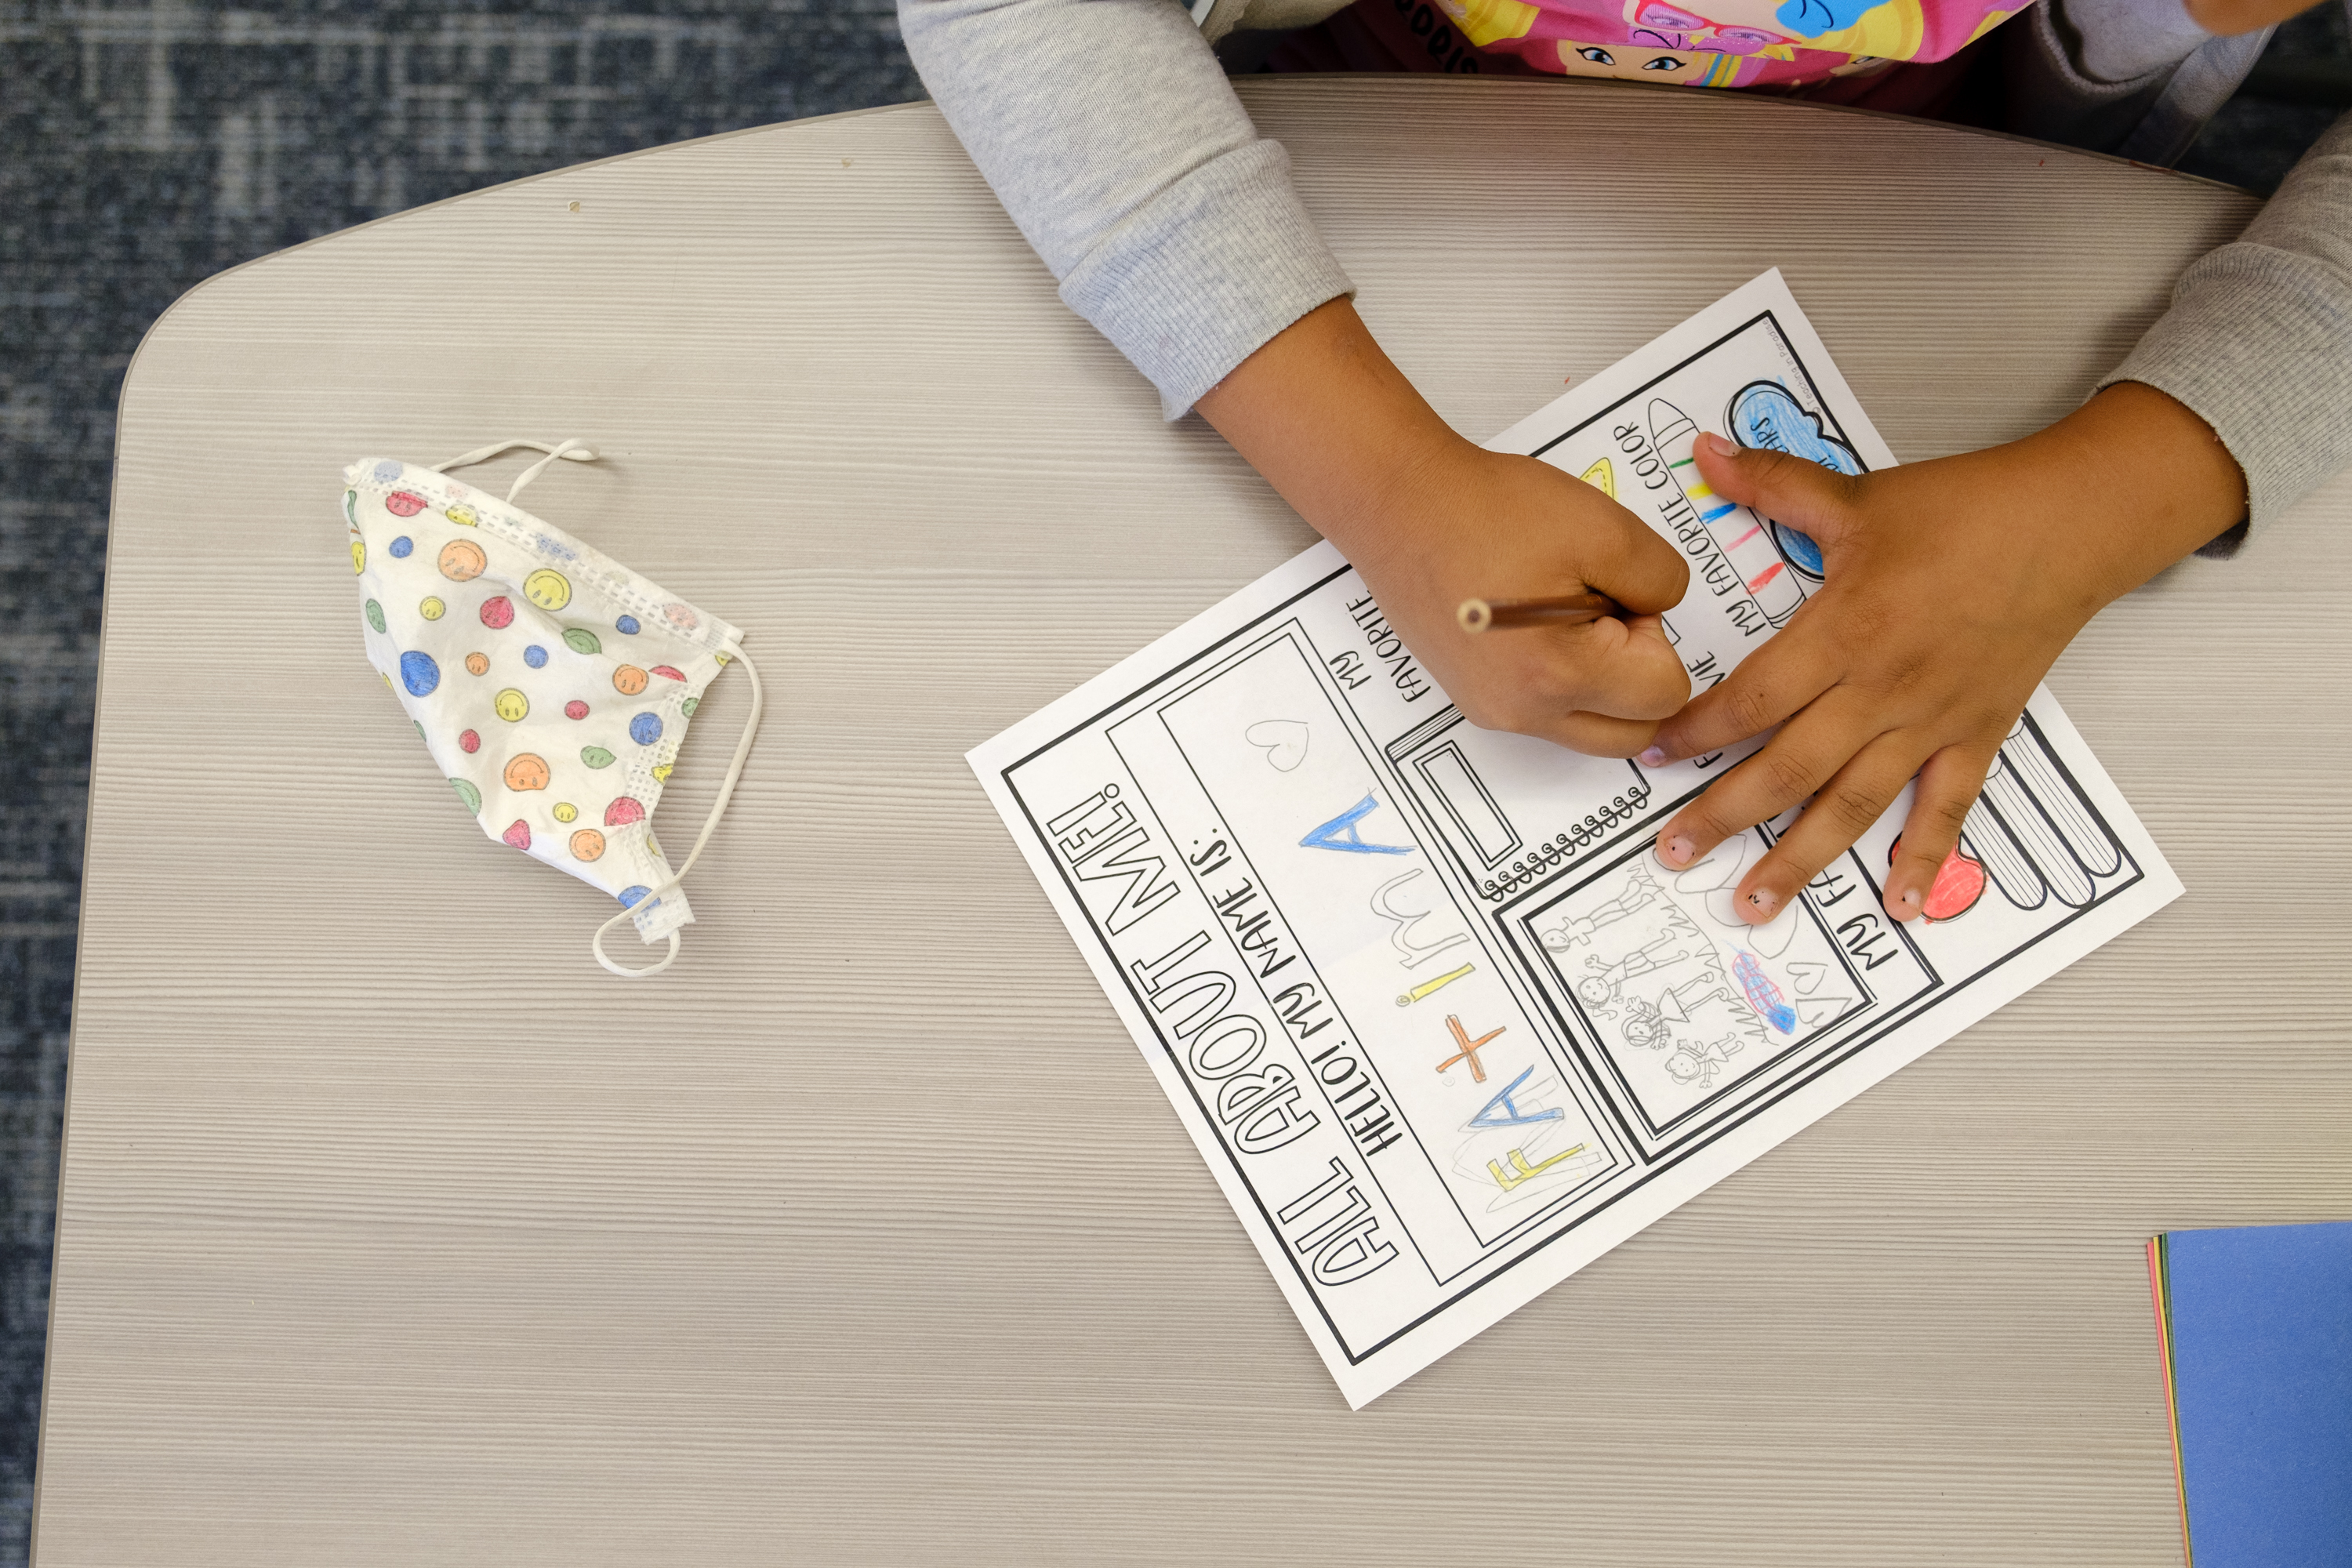 A mask sits next to a student as they complete a worksheet. The photo is zoomed in on the worksheet and the student's hands.